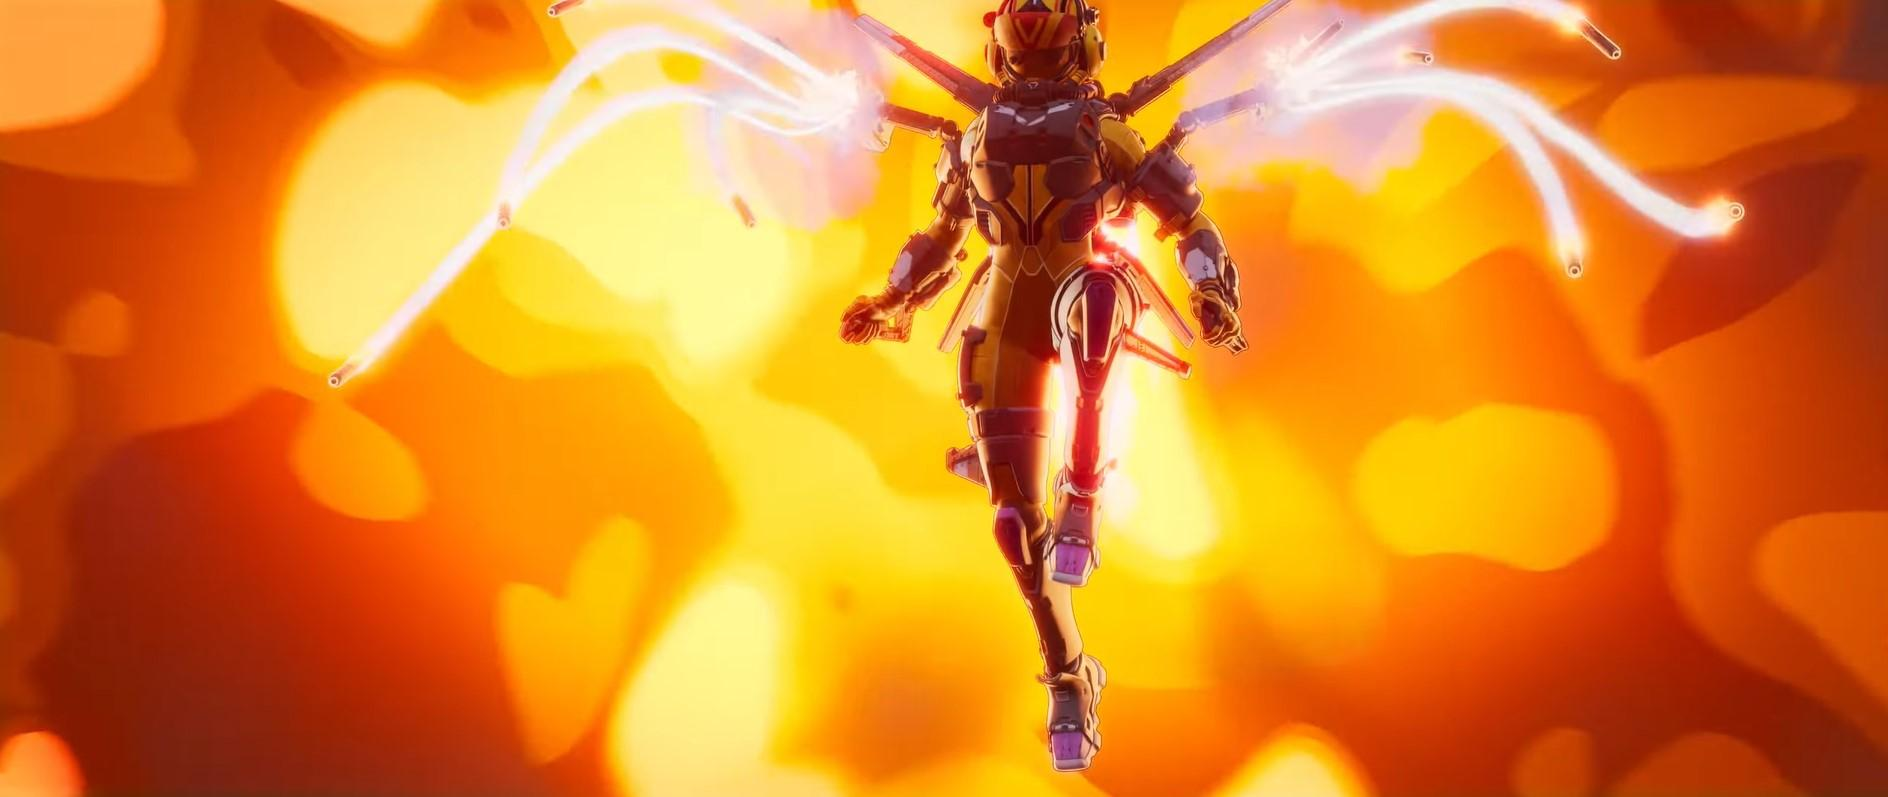 Valkyrie's rocket barrage in the Apex Legends Legacy launch trailer